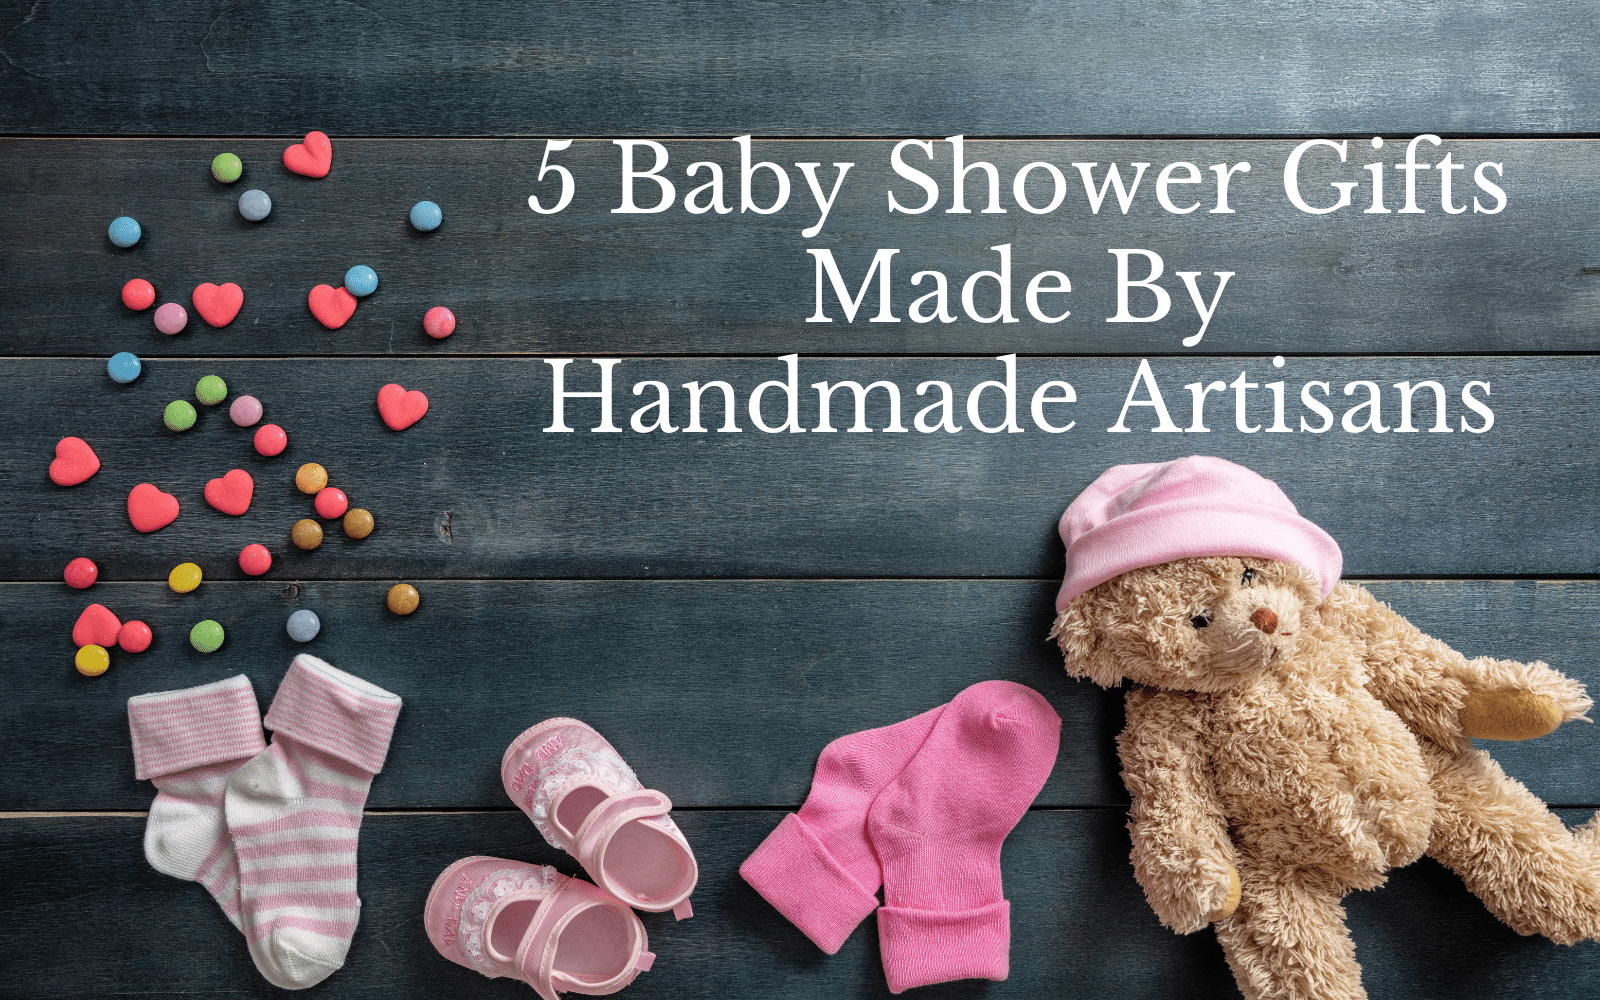 5 Baby Shower Gifts Made By Handmade Artisans | Sew Happy Quilting | Quilts for Sale